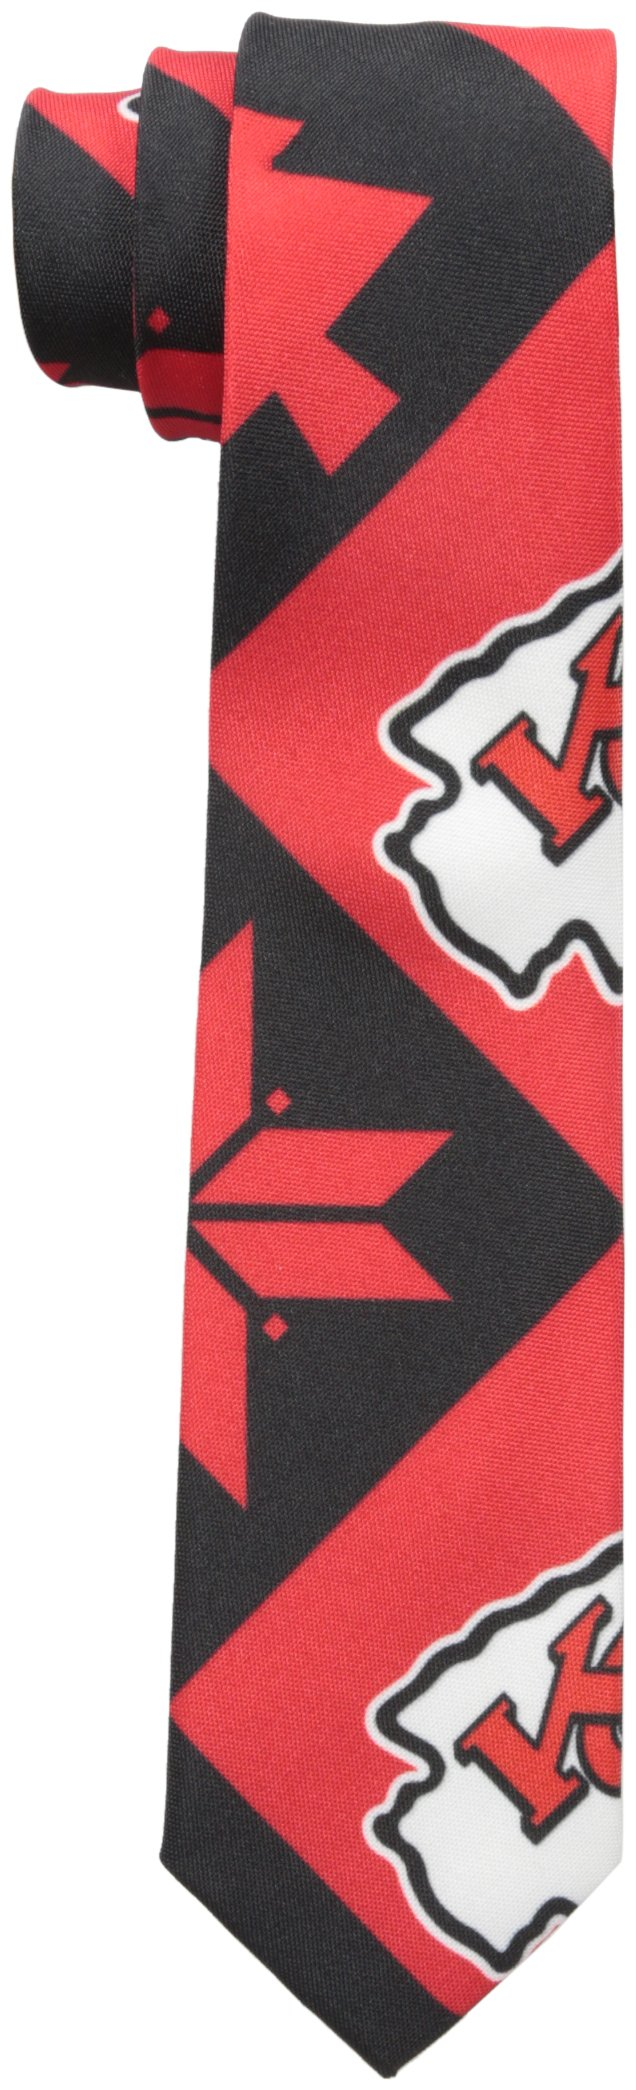 FOCO Kansas City Chiefs Patches Ugly Printed Tie - Mens